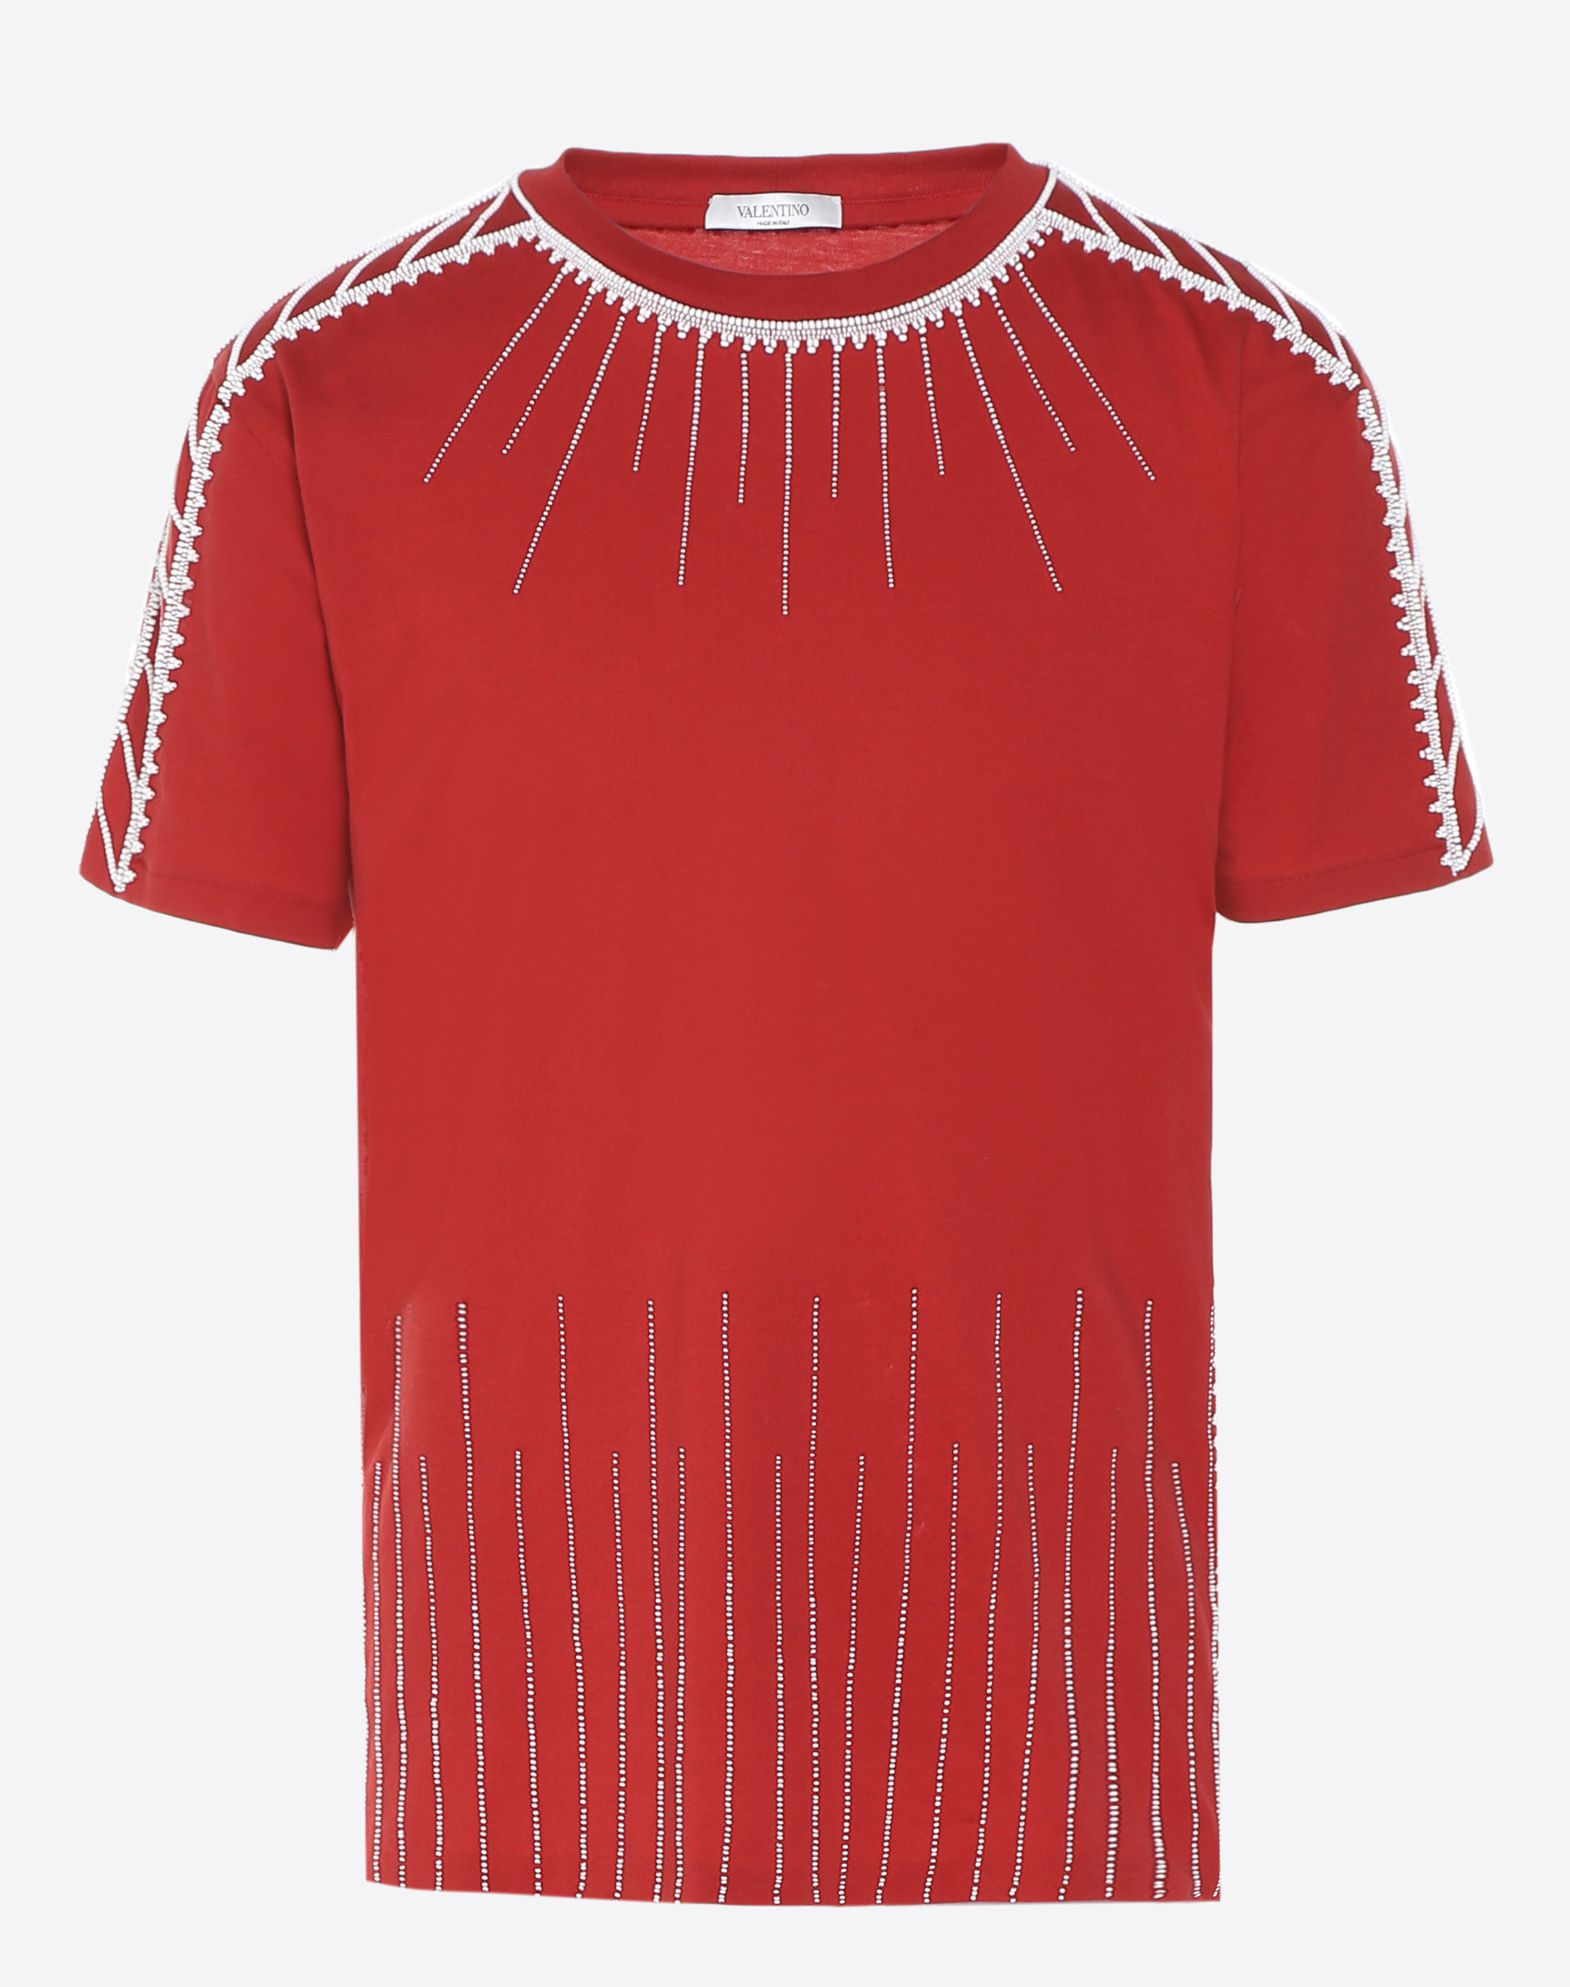 VALENTINO T-shirt with stitching and beads T-shirt U f